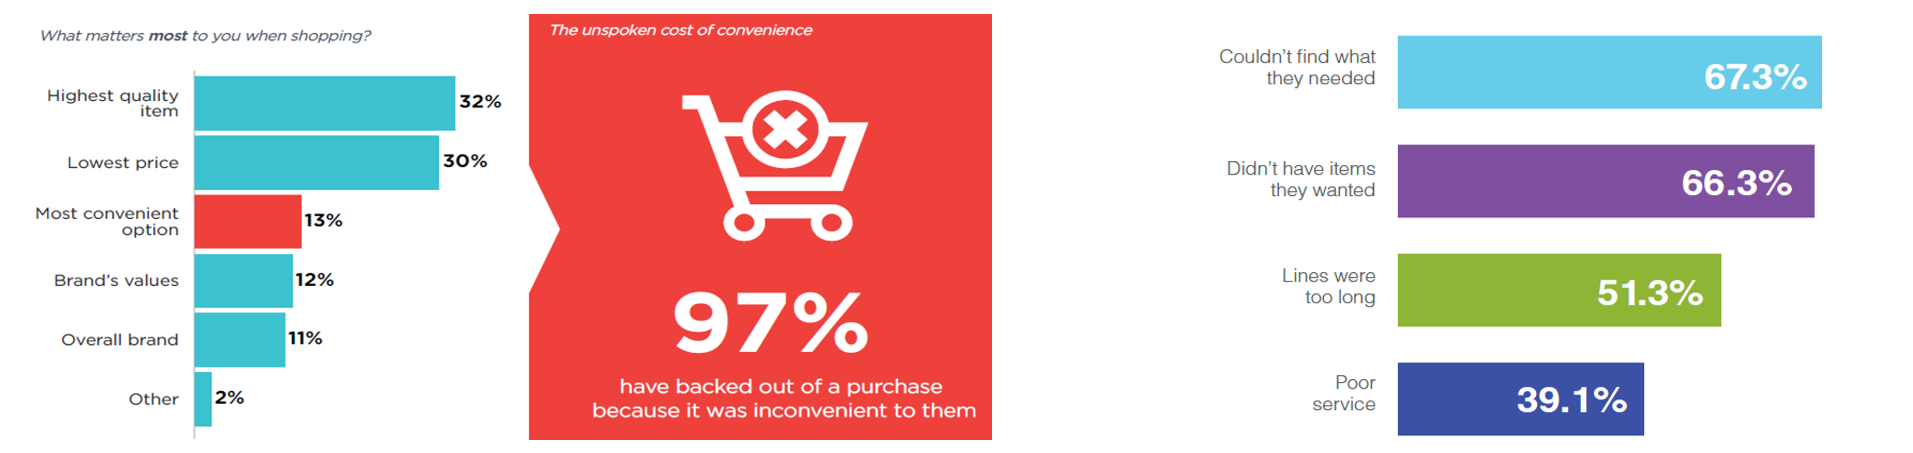 Shopper Insights and Convenience